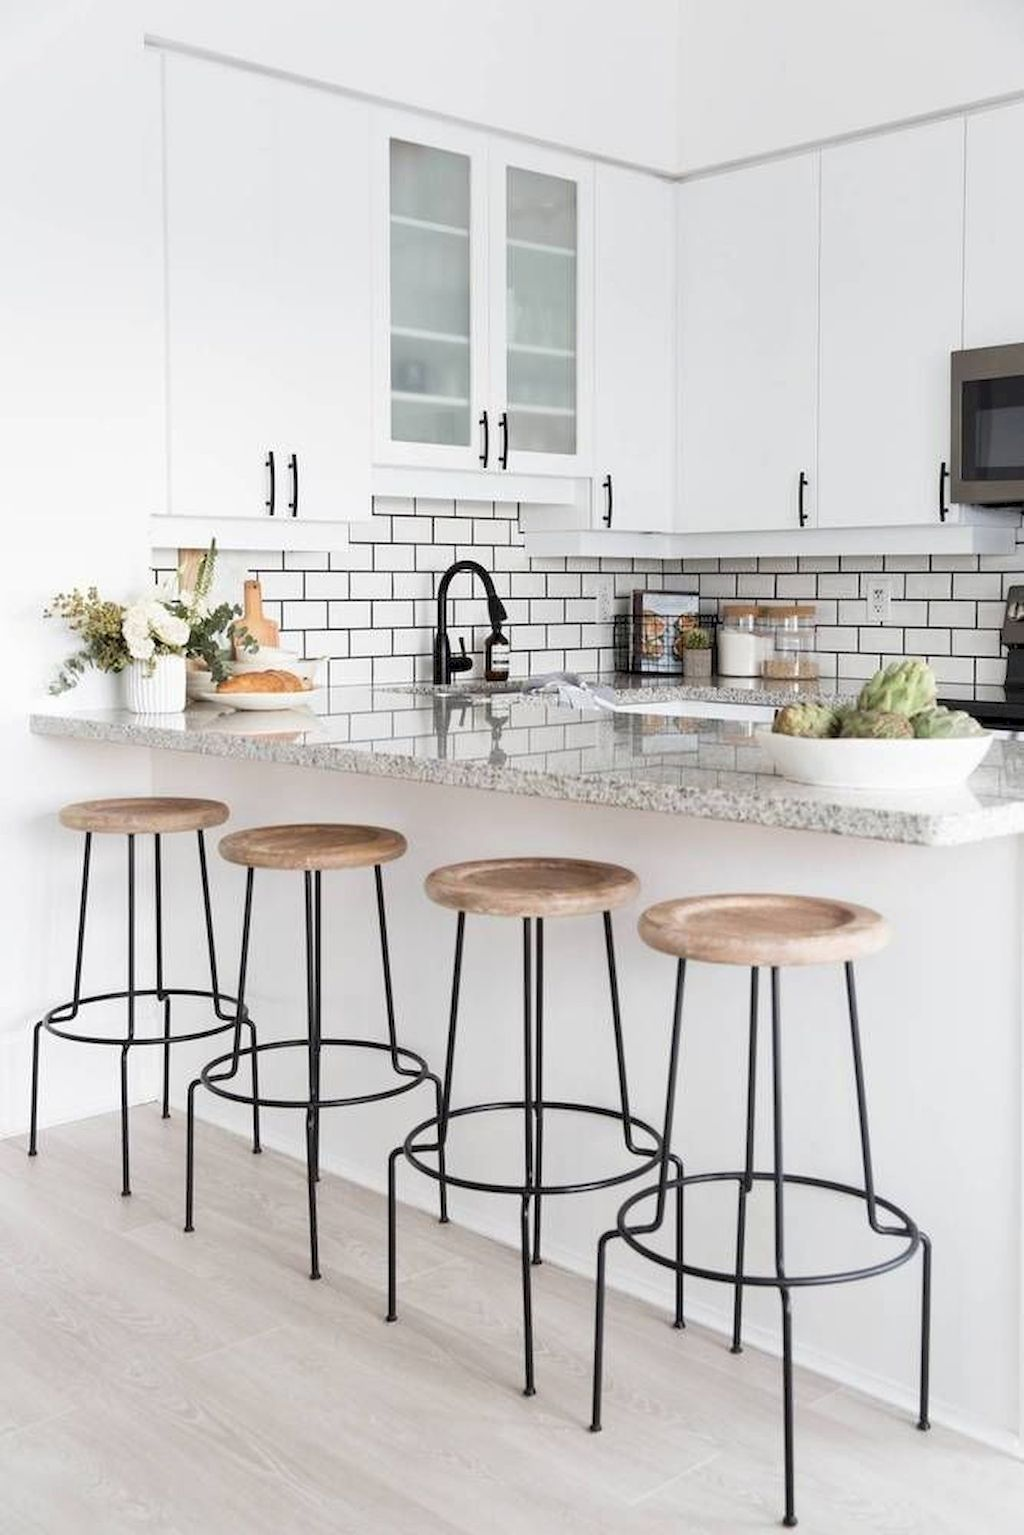 Kitchen Bar Stools On Sale 50 Minimalist Bar Stool Ideas For Small Kitchen Bar Elonahome